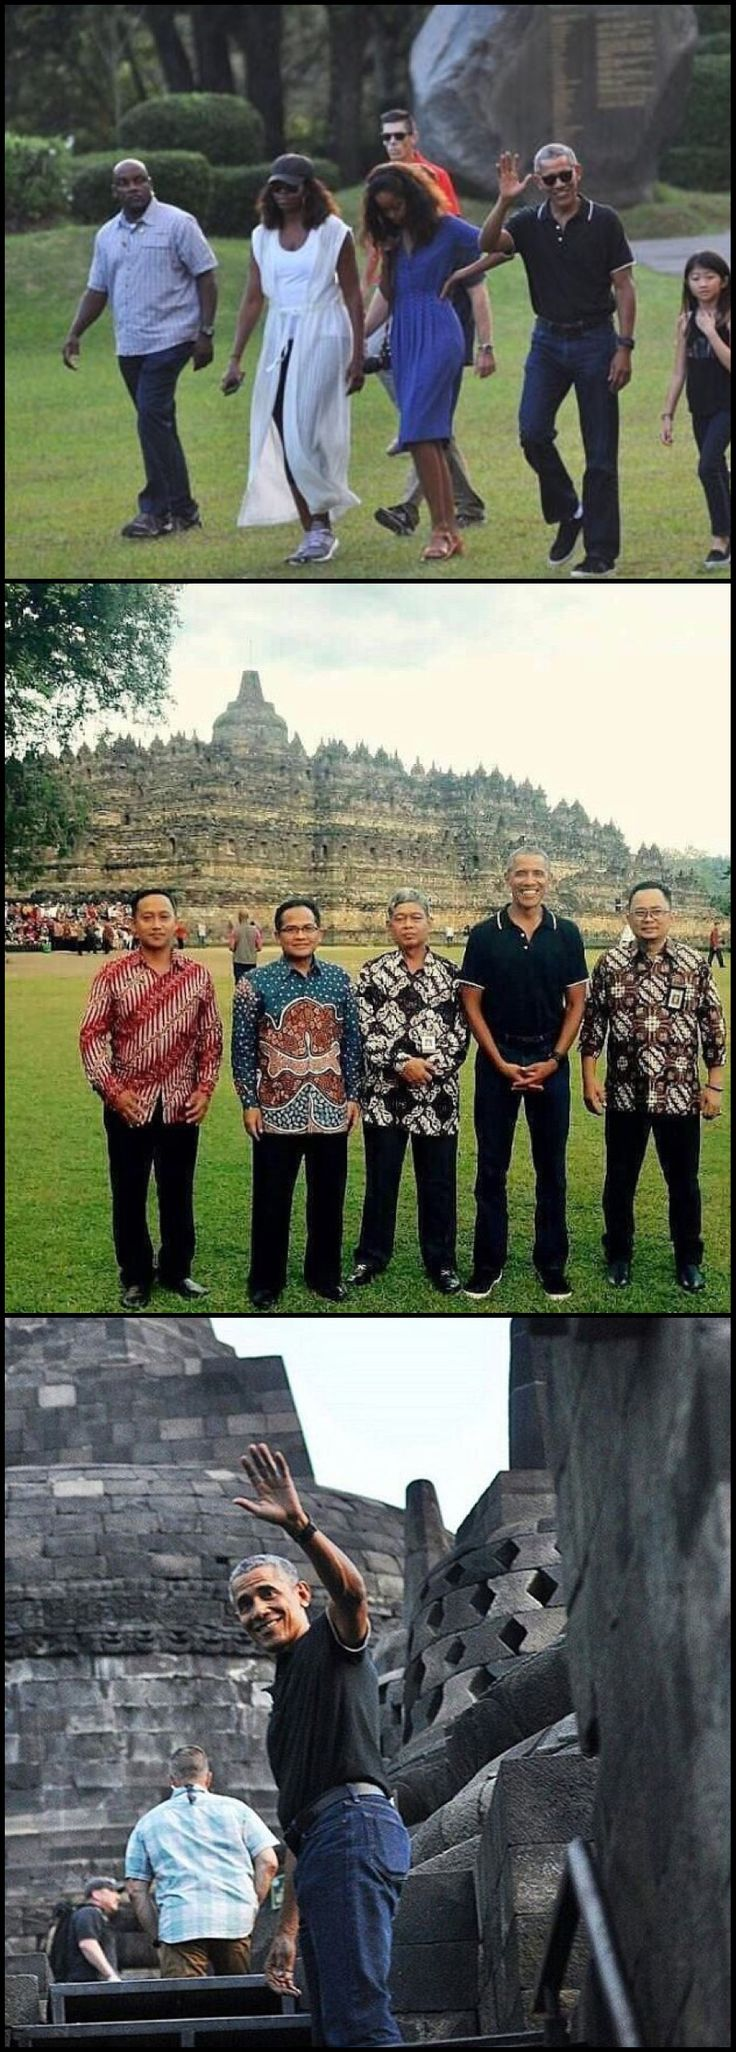 "#44thPresident #BarackObama spent his childhood in #Indonesia and learnt Javanese Culture from his step father Mr.Sutoro. It is respectful & polite for a man to put both his hands together,in front of his lower abdomen while standing. The gesture is called ""Ngapurancang&rdqu 6/28/17 #TheObamas on #Vacation �#ObamaFamily #ObamaGirls #ObamaLegacy #ObamaHistory #ObamaLibrary #ObamaFoundation Obama.org"